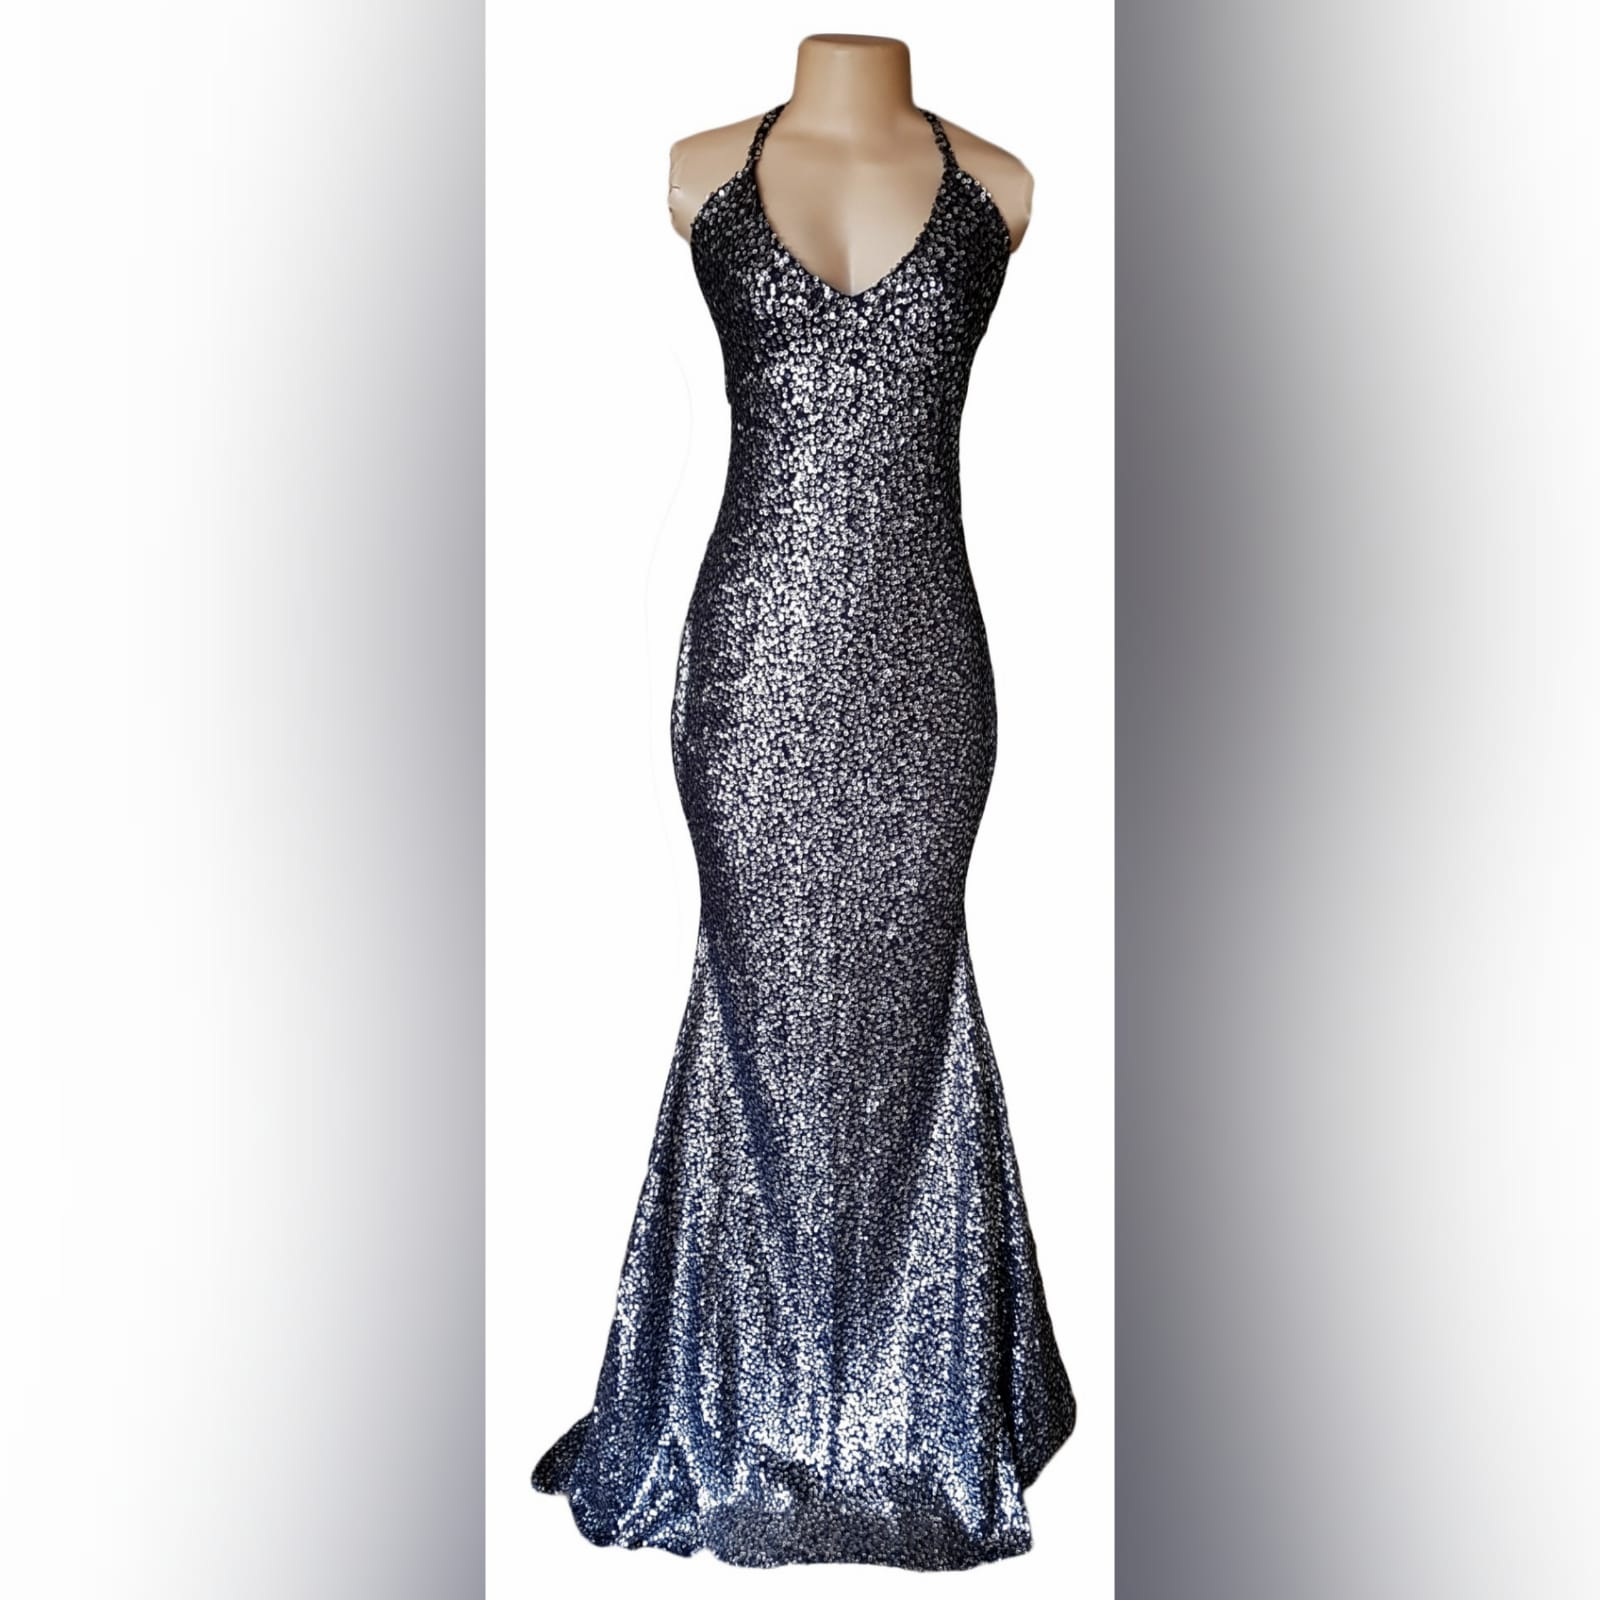 Charcoal fully sequins long evening dress for end year party 1 charcoal fully sequins long evening dress for end year party, with a low v open back and crossed shoulder straps.